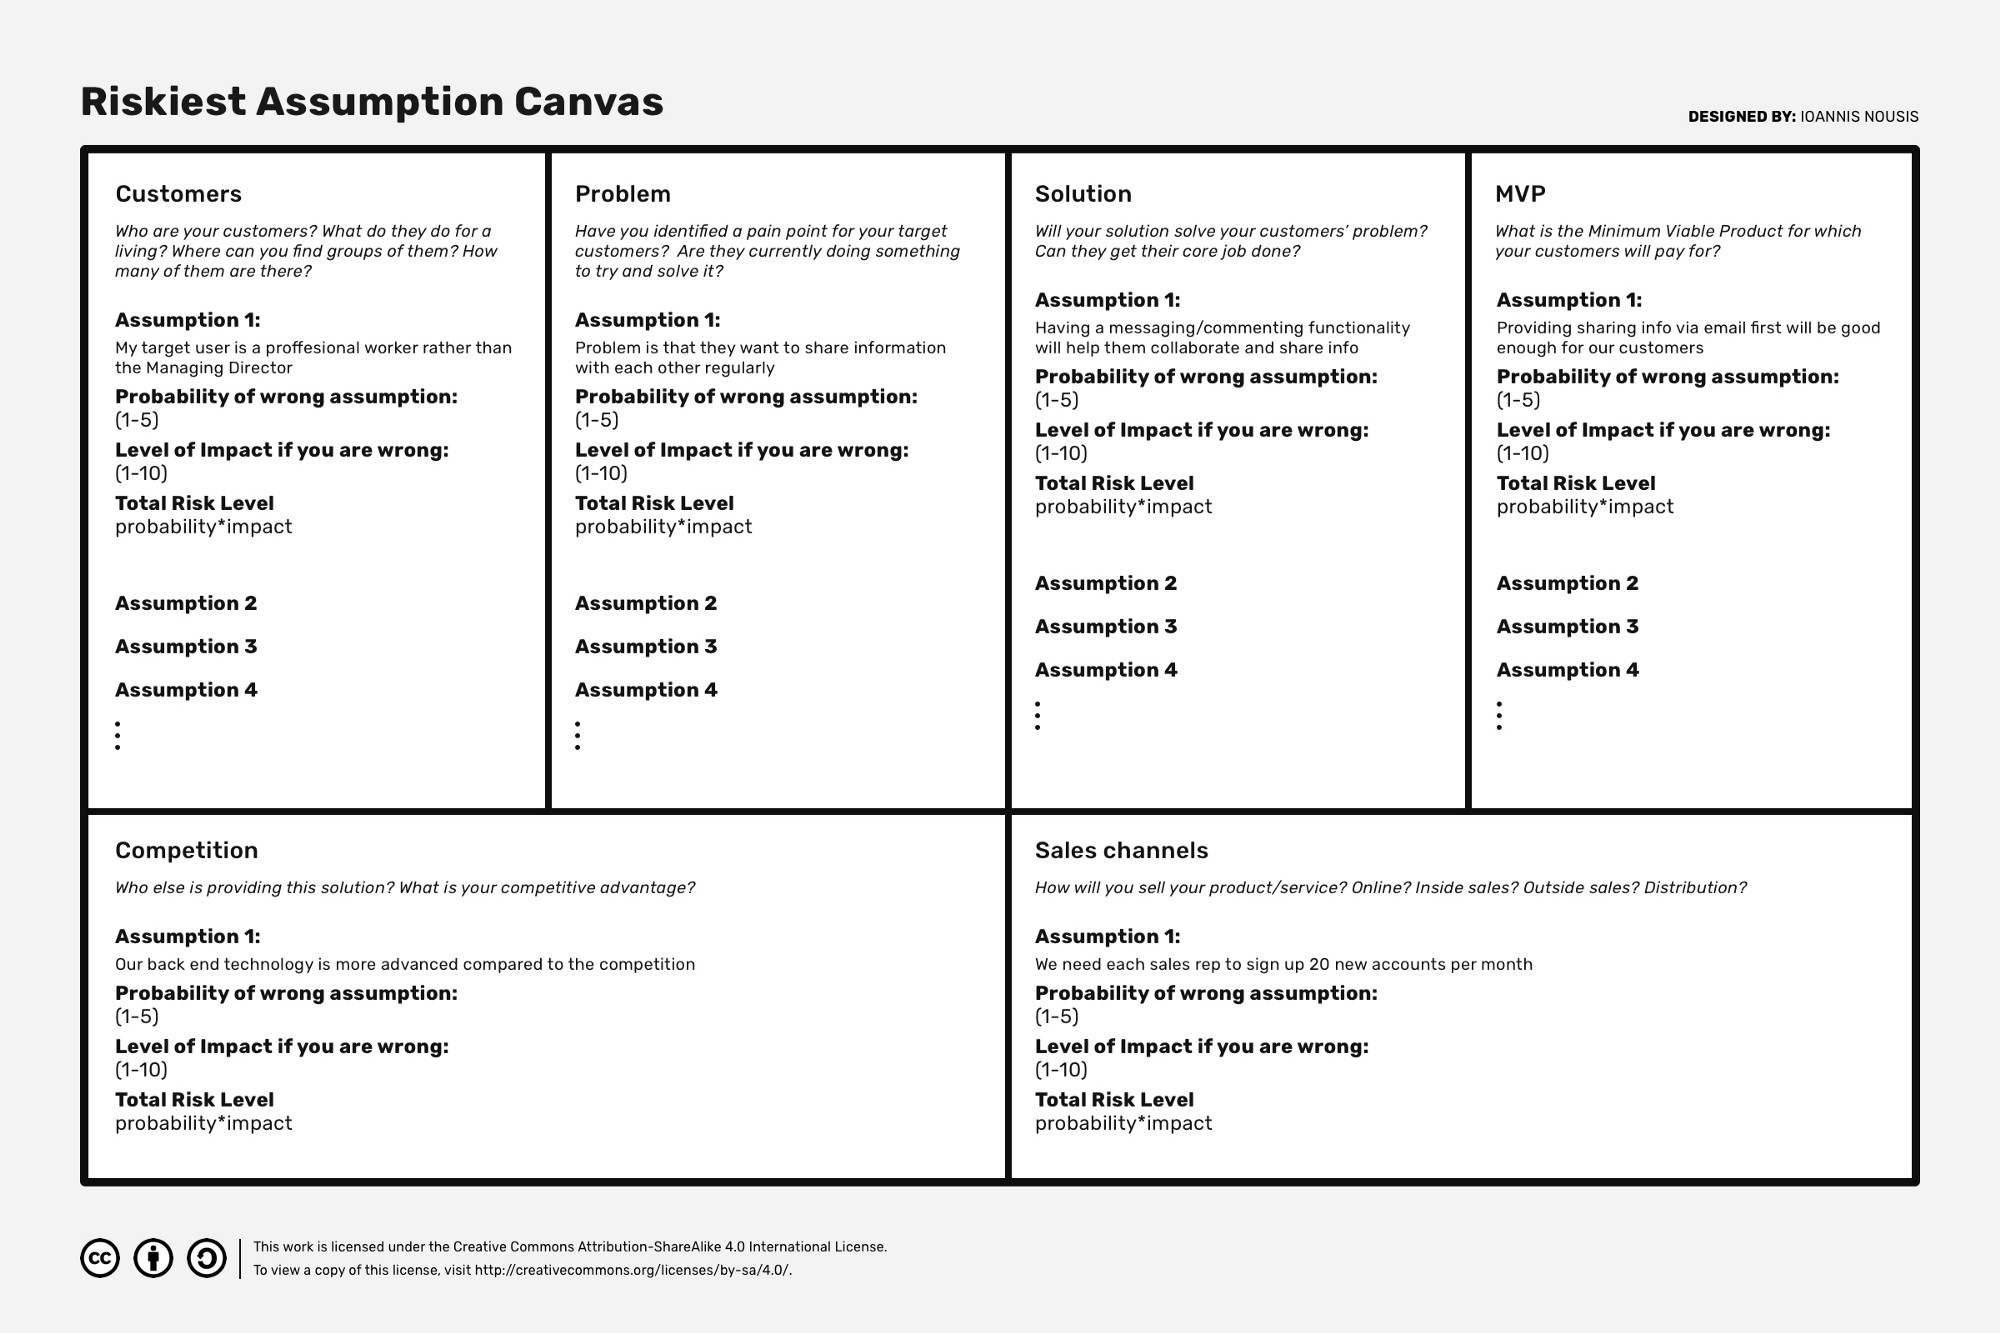 Introducing the Riskiest Assumption Canvas